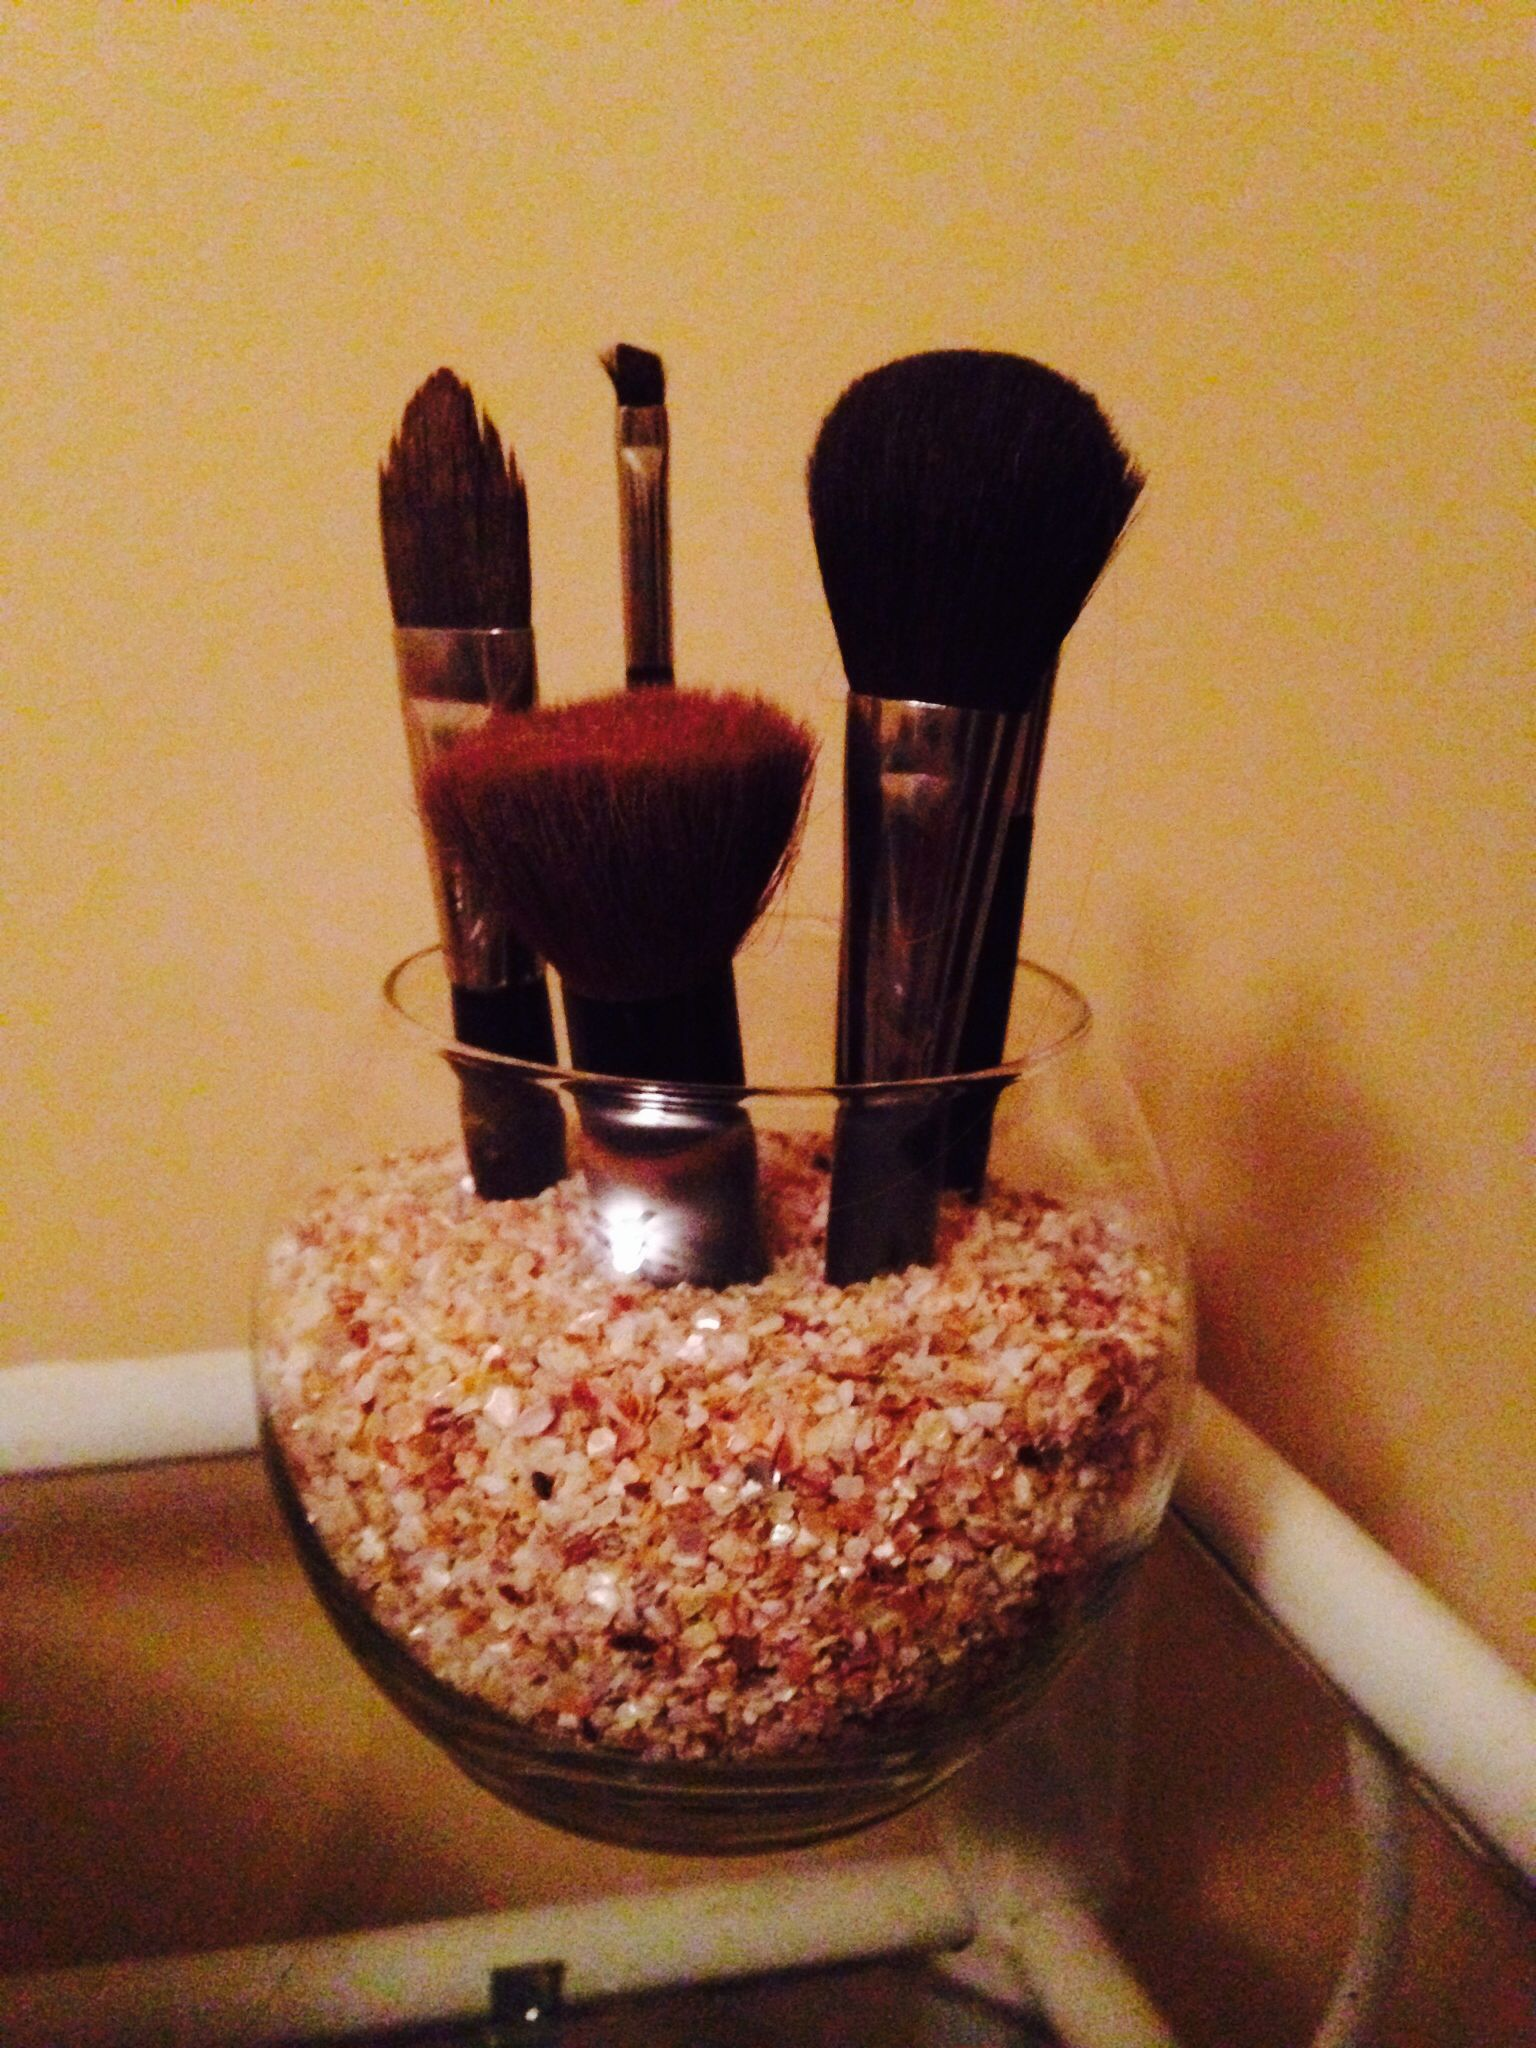 Dollar tree vase and pearl rocks to hold makeup brushes